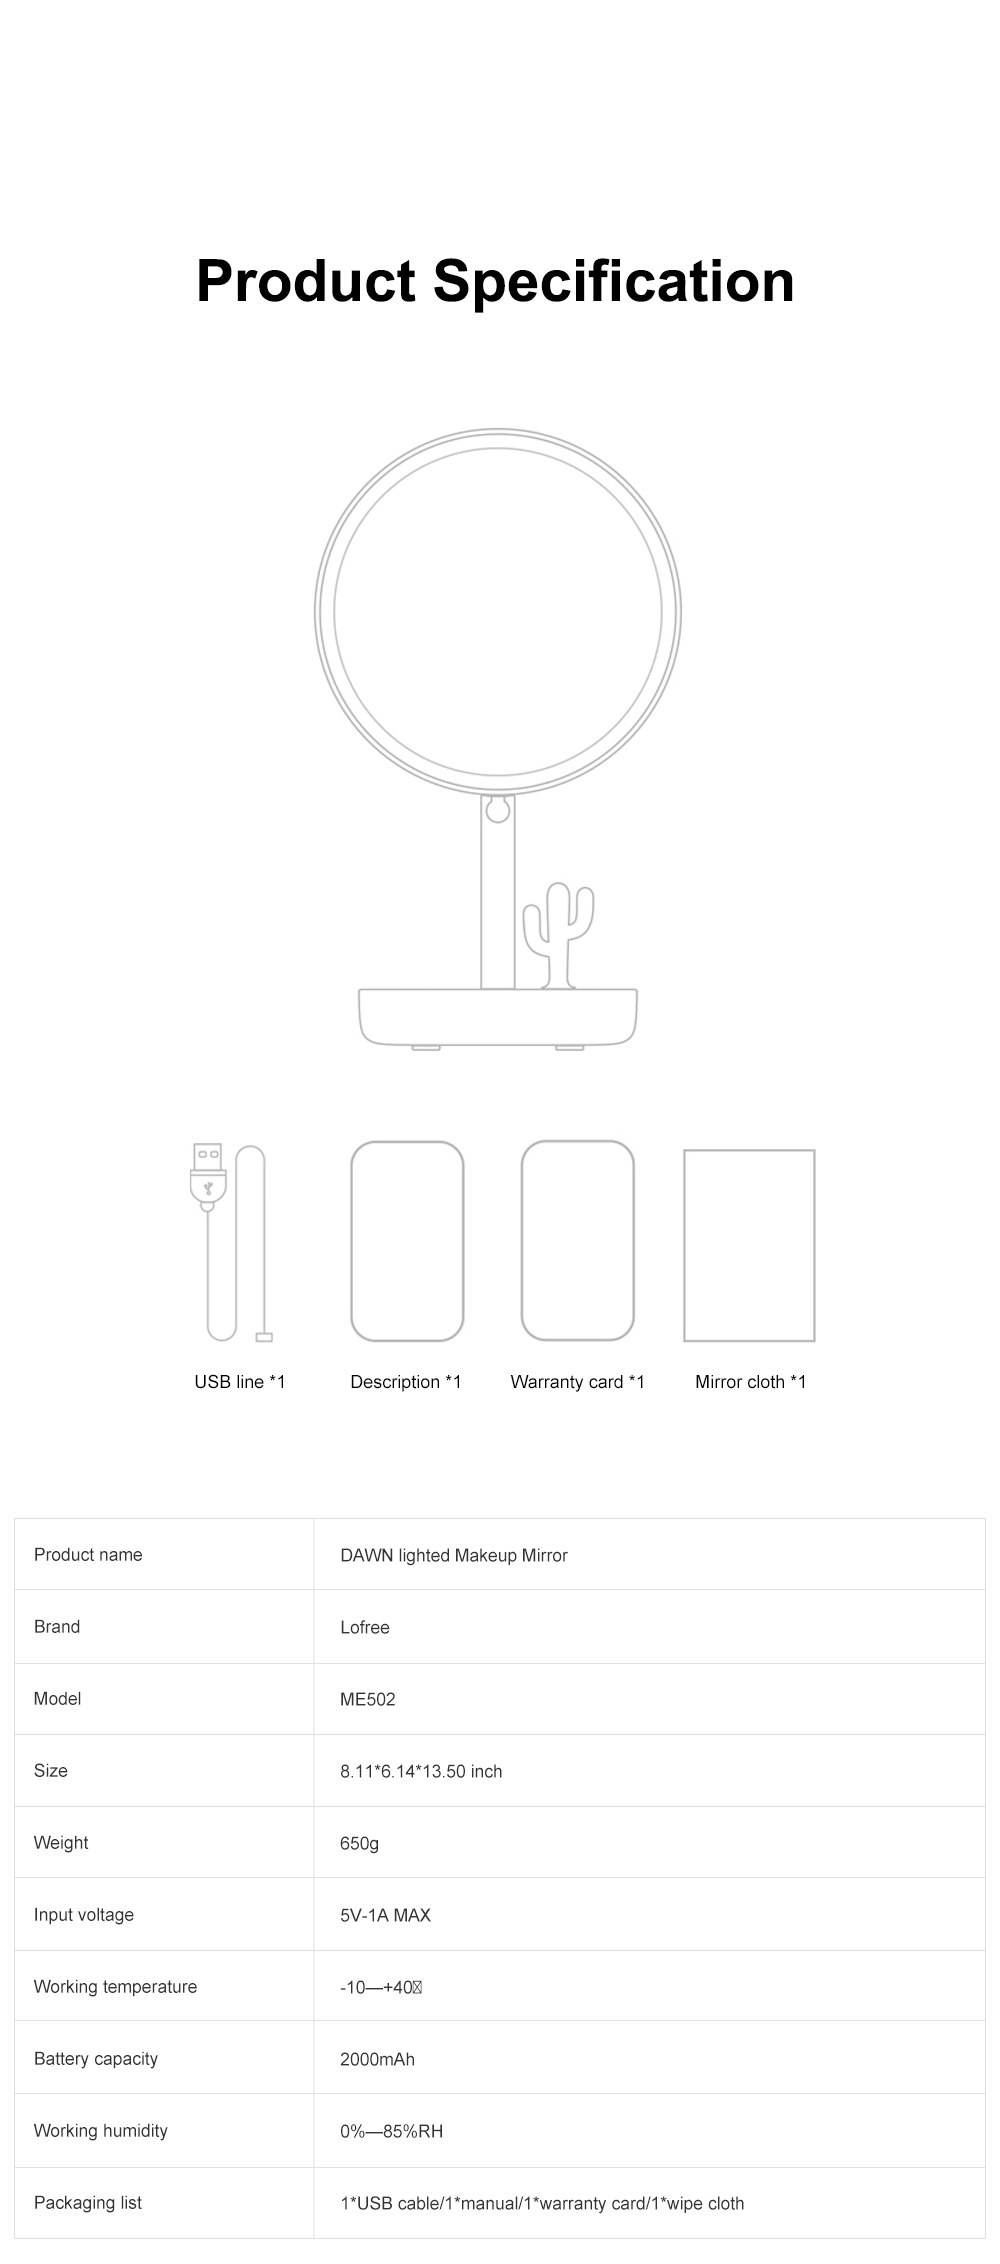 LOFREE 7 Inch Makeup Mirror Rechargeable Vanity Mirror with Adjustable Brightness Double-layer Storage and Rotation Switch 8